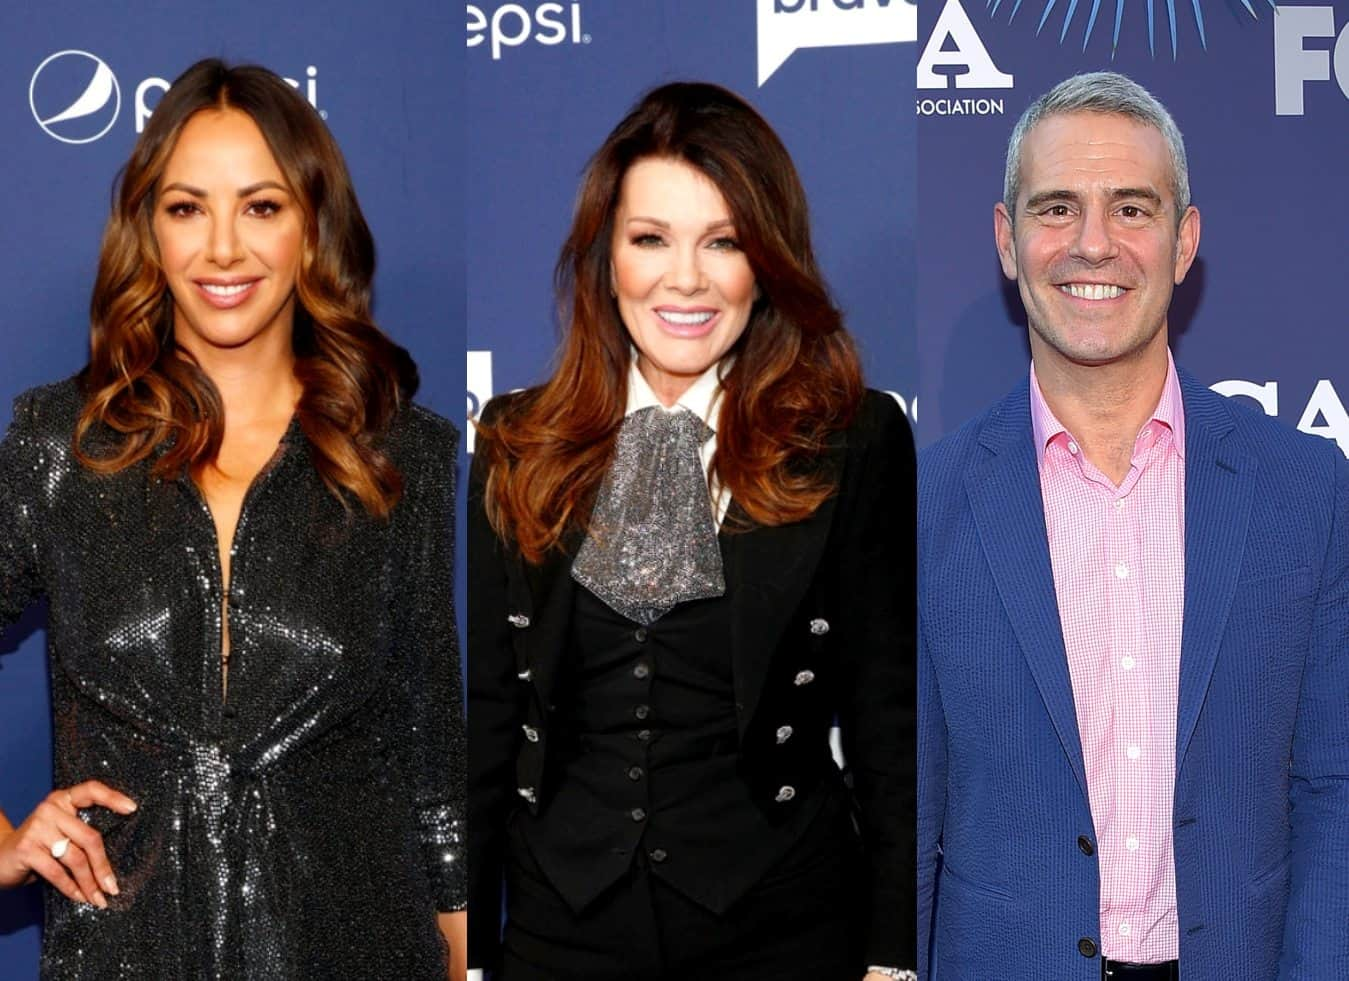 Kristen Doute Says Lisa Vanderpump Hasn't Reached Out Since Firing From Vanderpump Rules, Reveals What Andy Cohen Told Her in a DM, Does She See a Possible Return to Show?